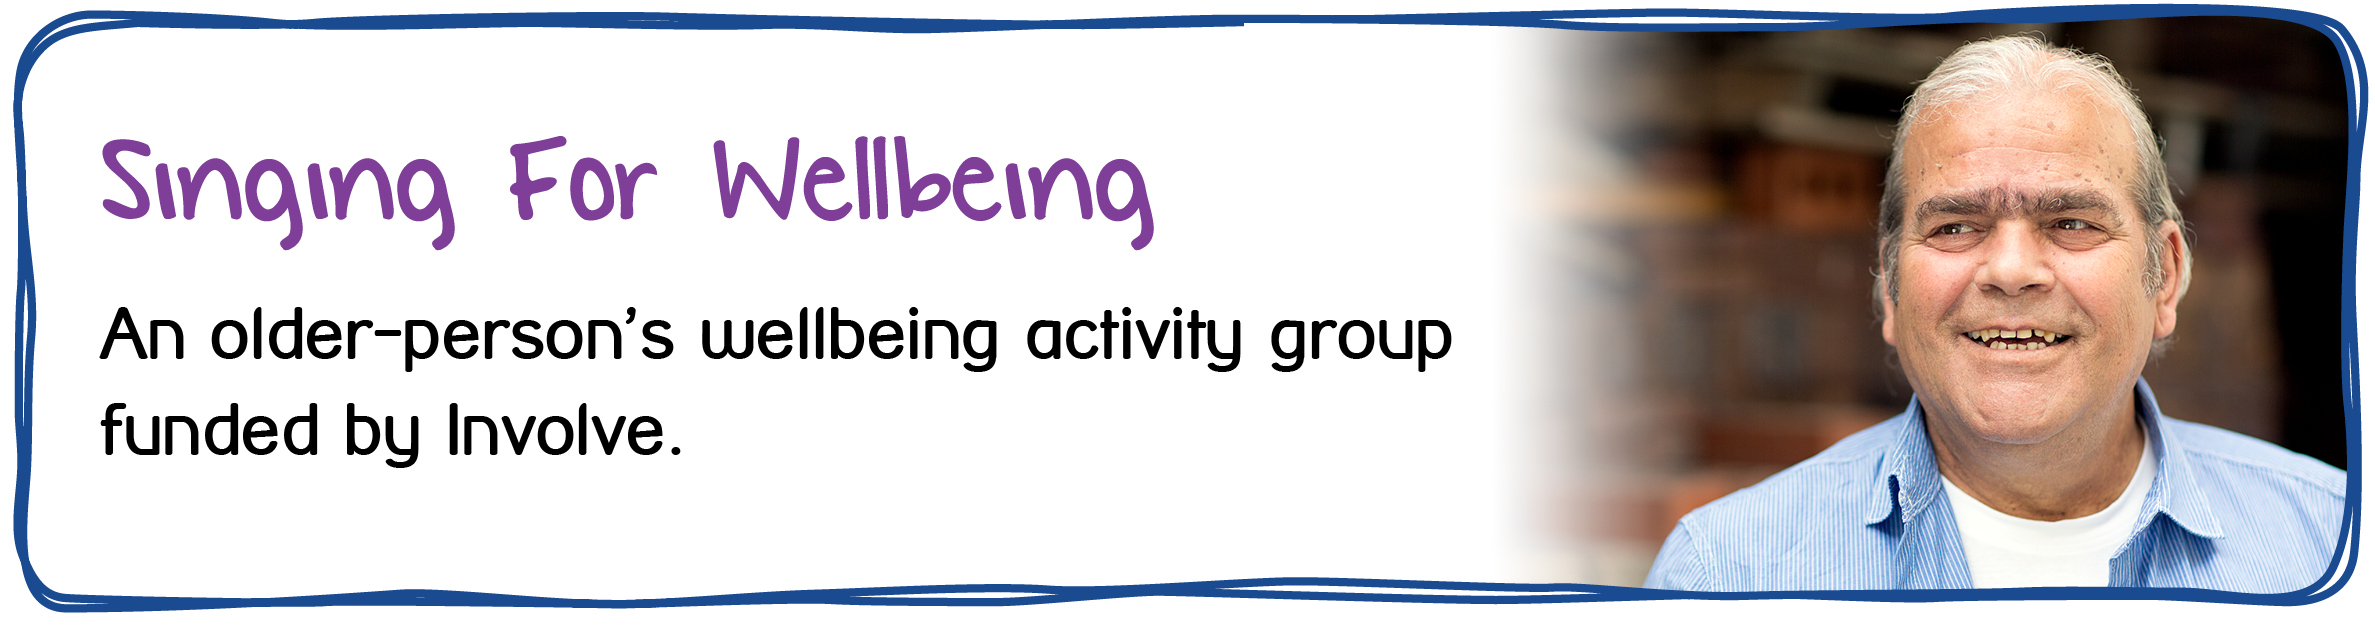 Singing For Wellbeing - An older-person's wellbeing activity group funded by Involve.